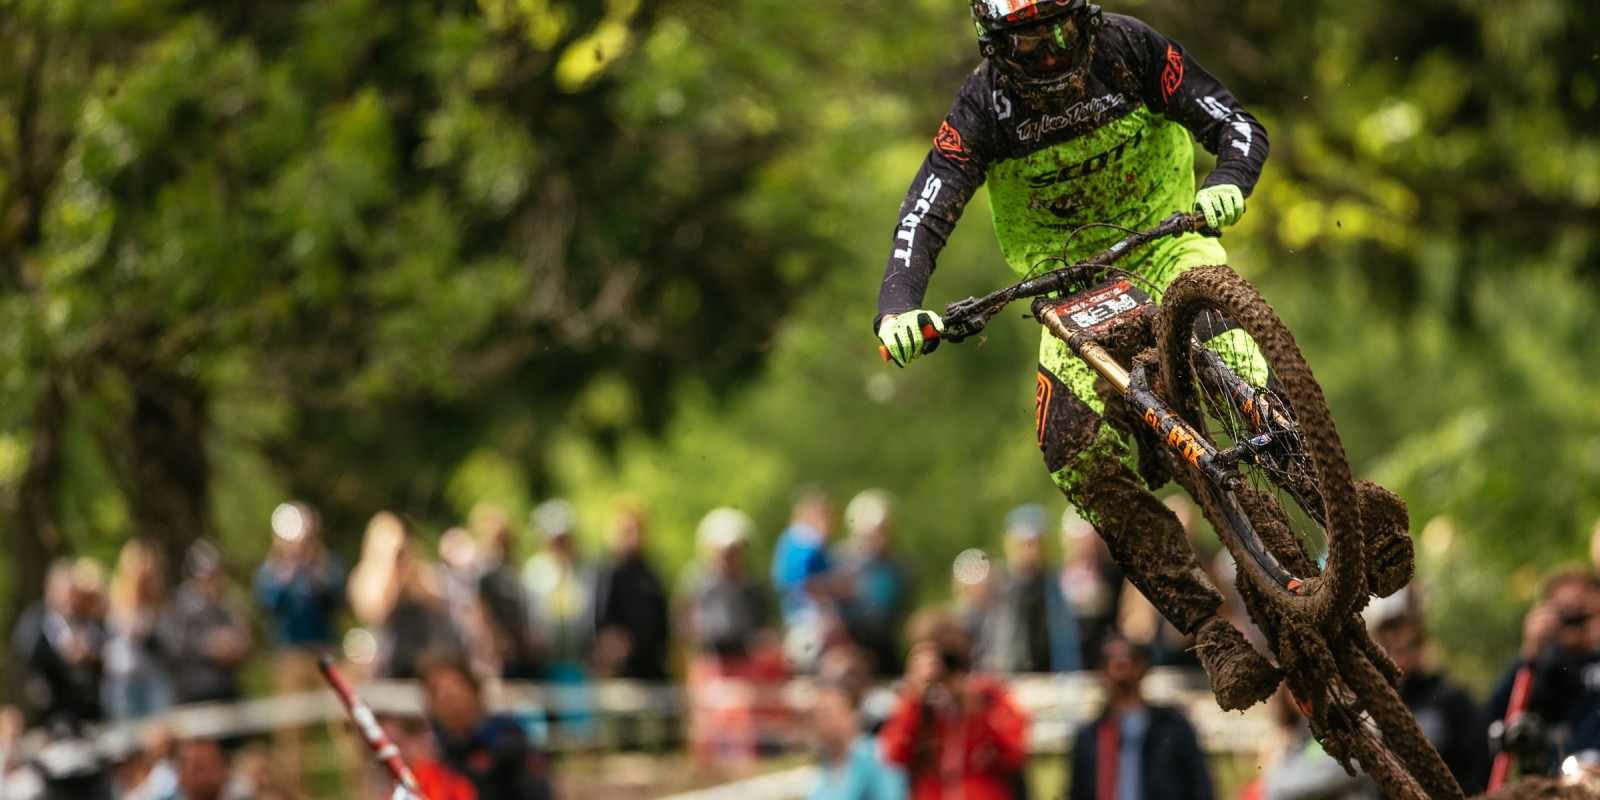 Brendan Fairclough during the 2016 mountain bike CWX Les Gets in the French Alps